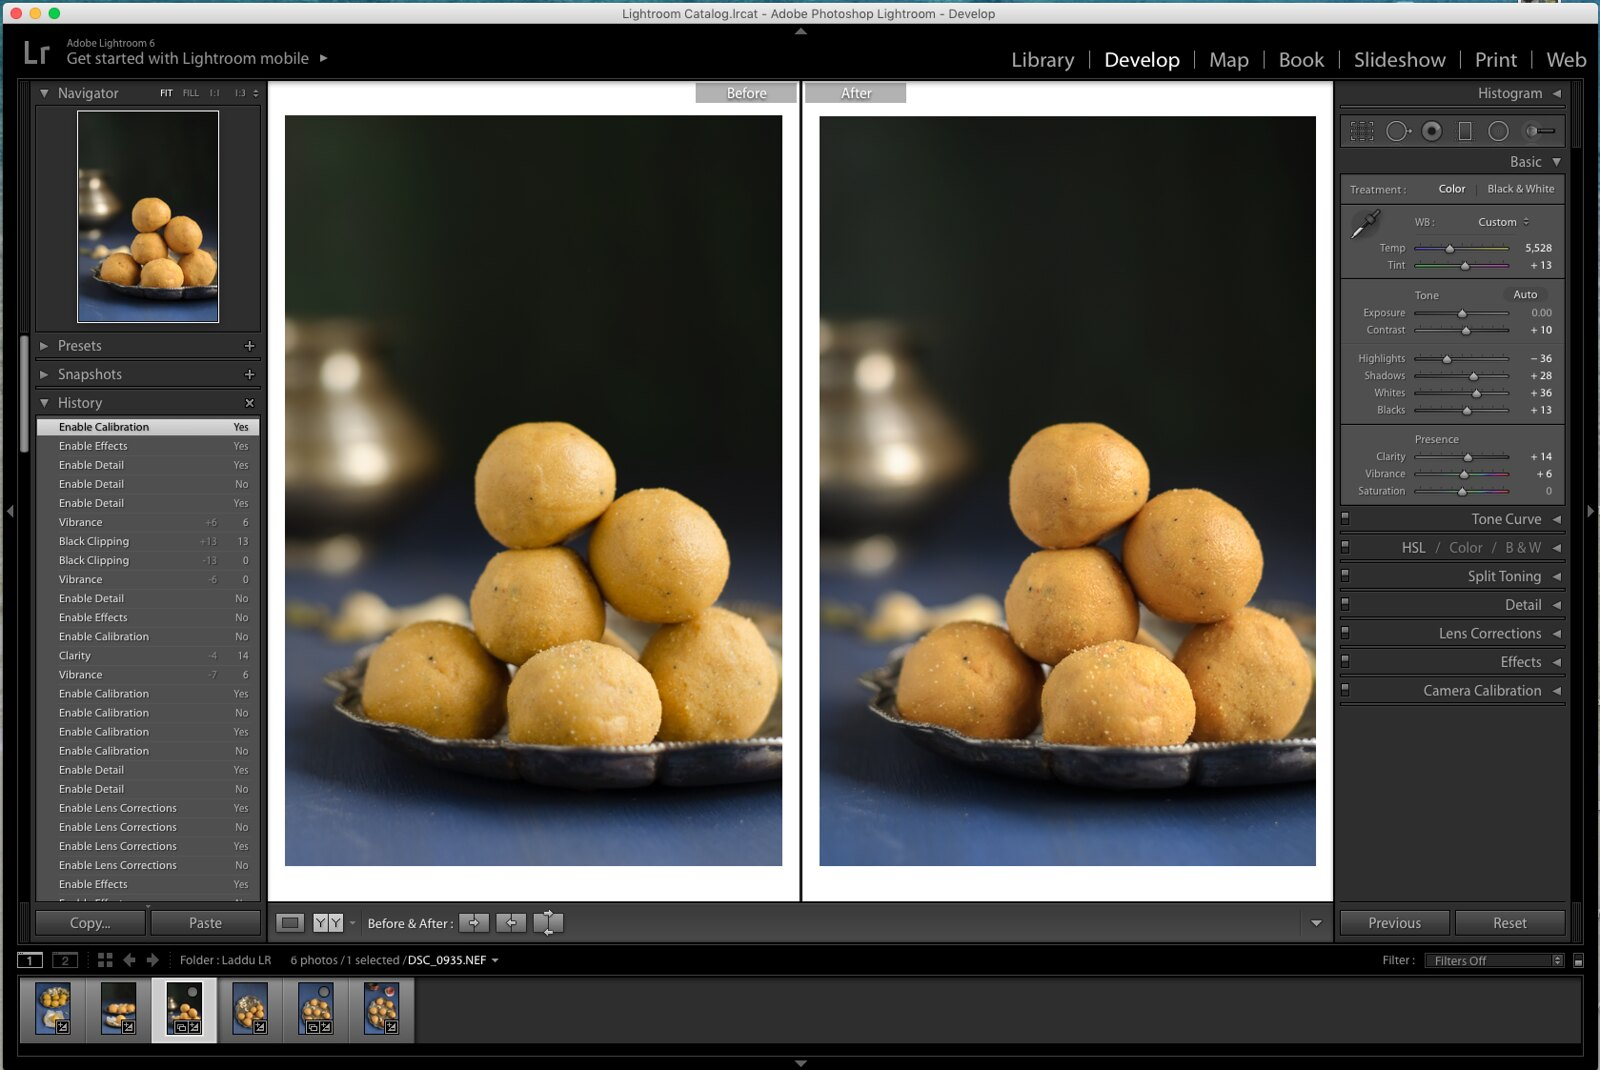 Lightroom Tutorial for Food photos, Lightroom tutorial, Editing RAW files in Lightroom,  Lightroom Food Tutorial, How to edit food photos in Lightroom,